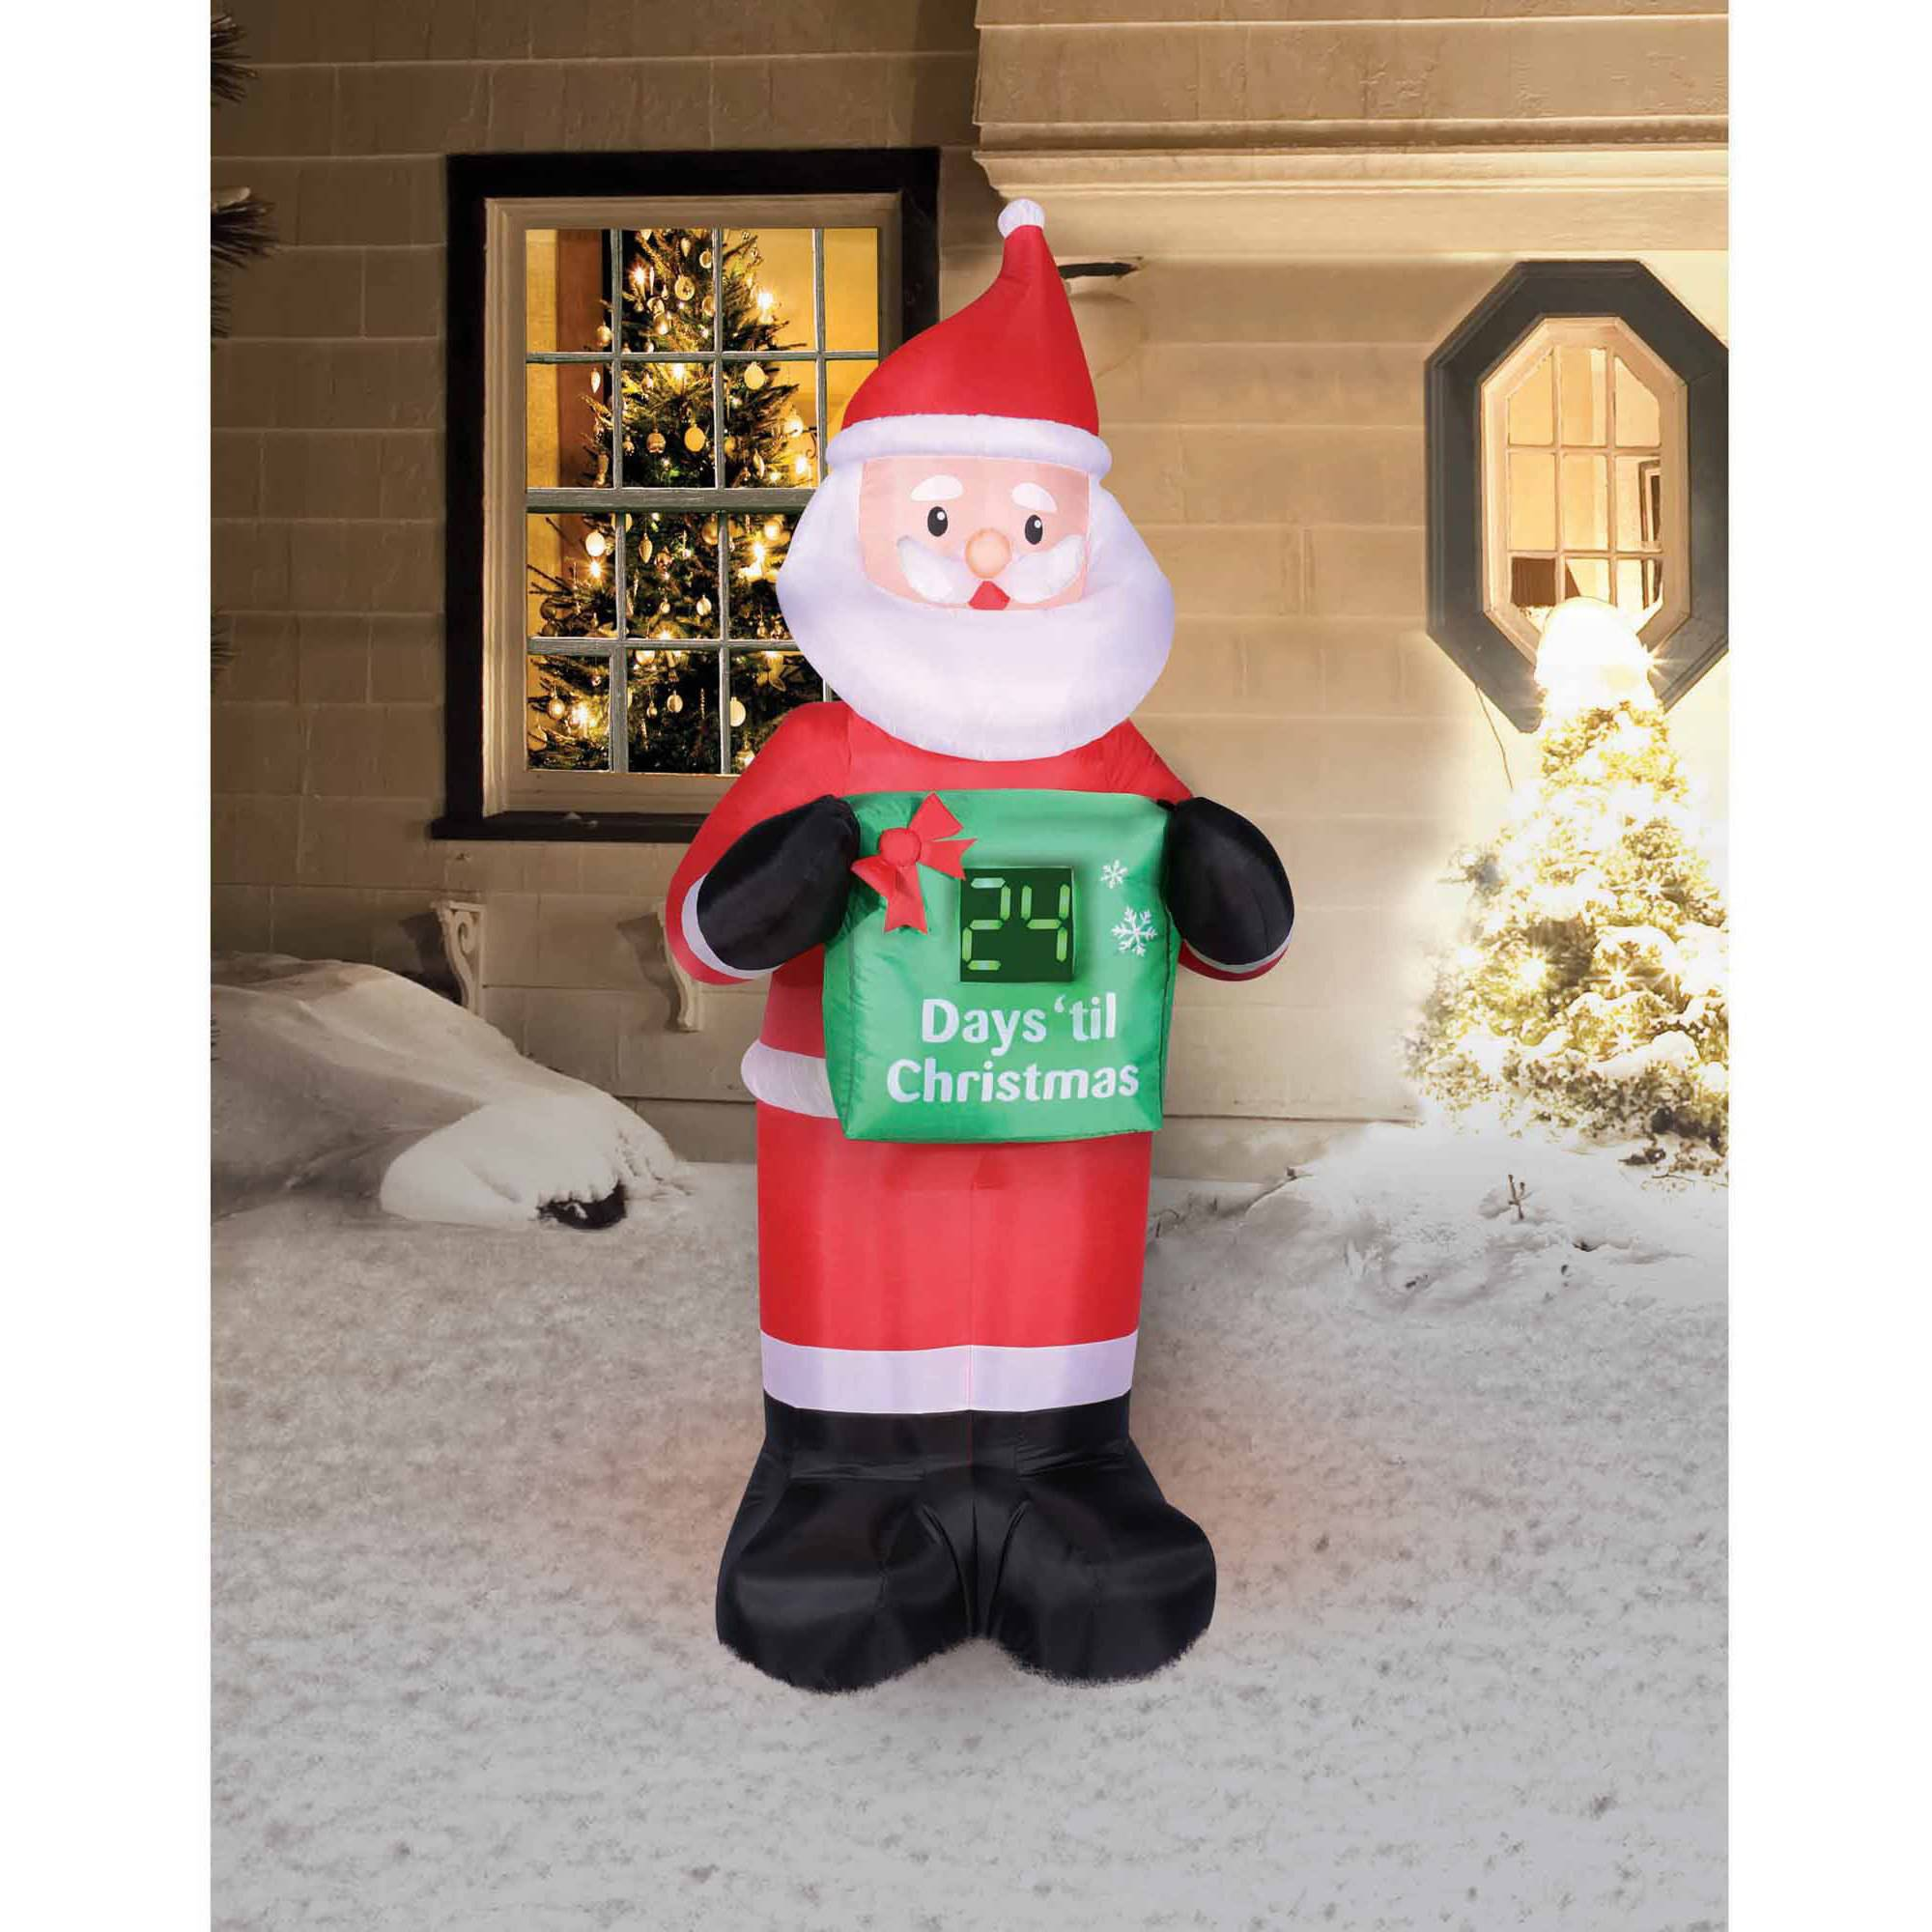 holiday time 7 countdown calendar santa christmas inflatable walmartcom - Walmart Inflatable Christmas Decorations